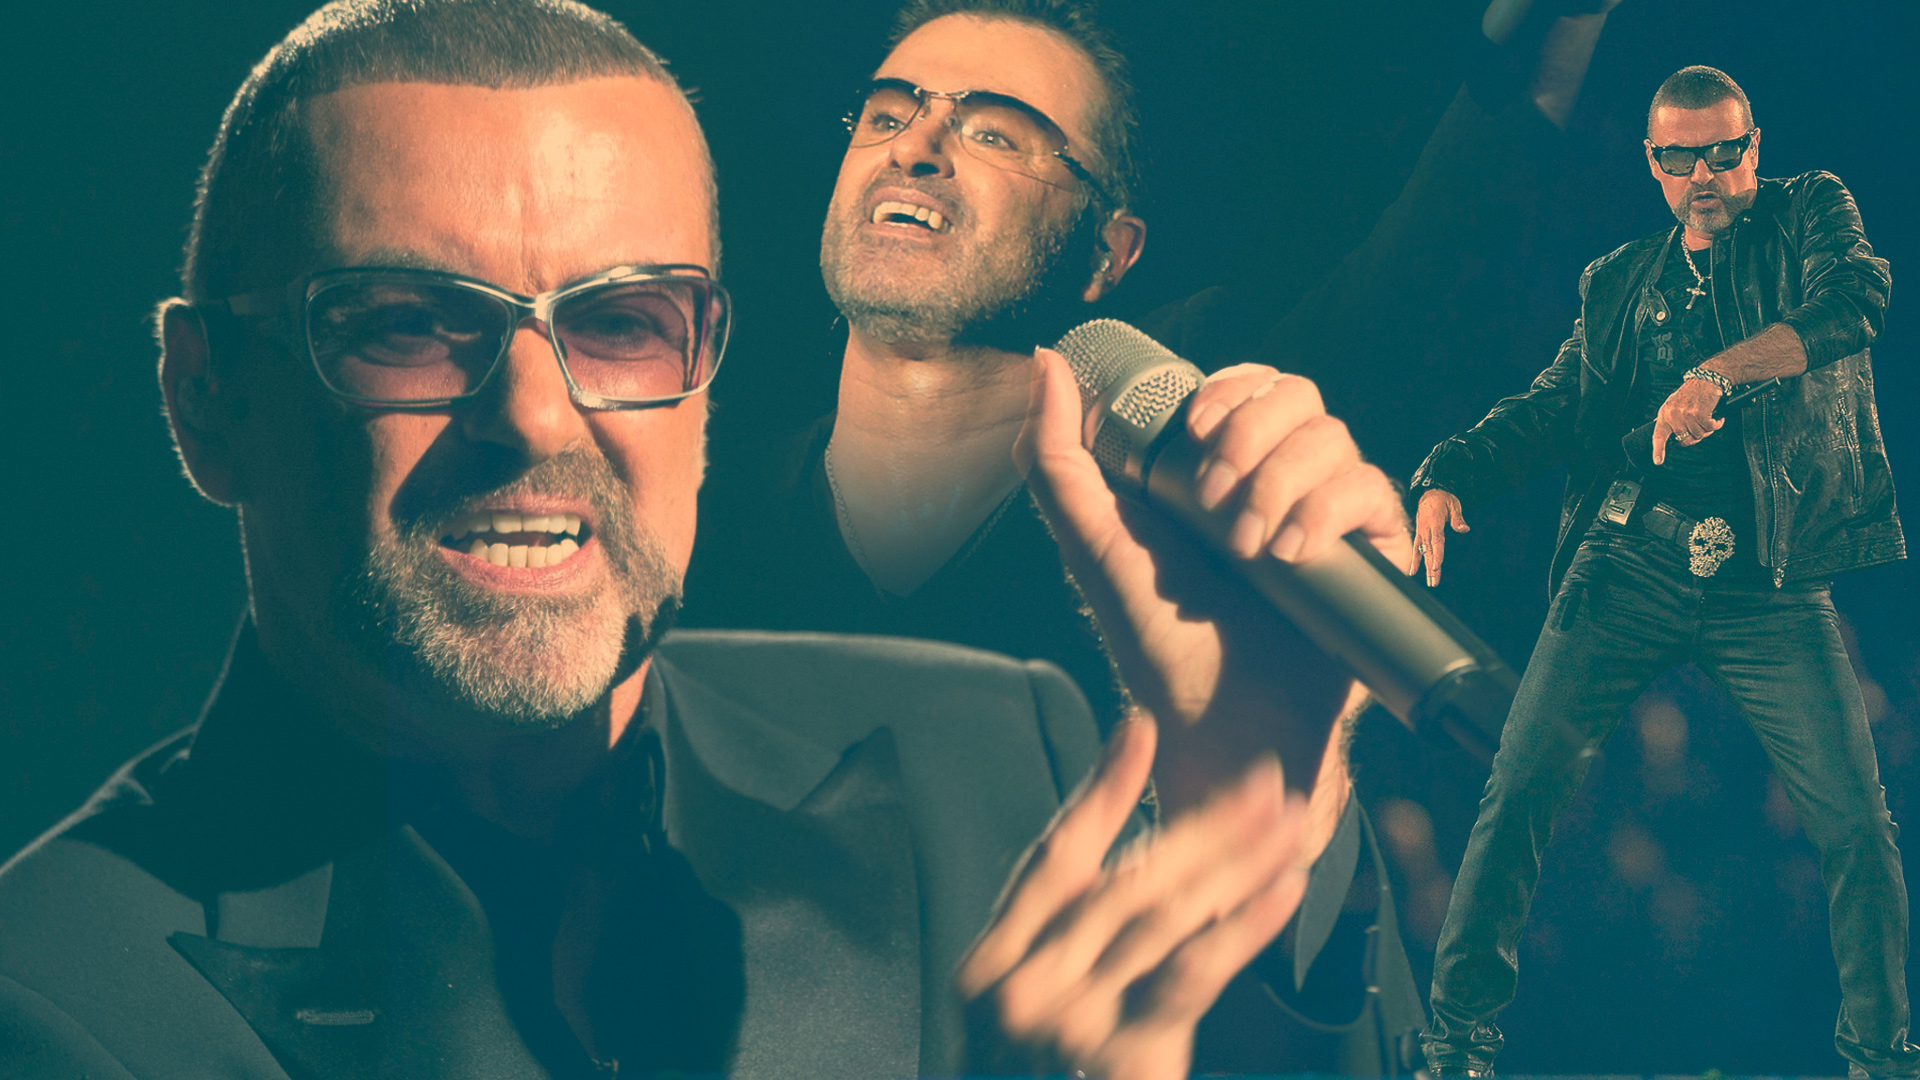 Elvis 3d Wallpaper George Michael Wallpapers Pictures Images